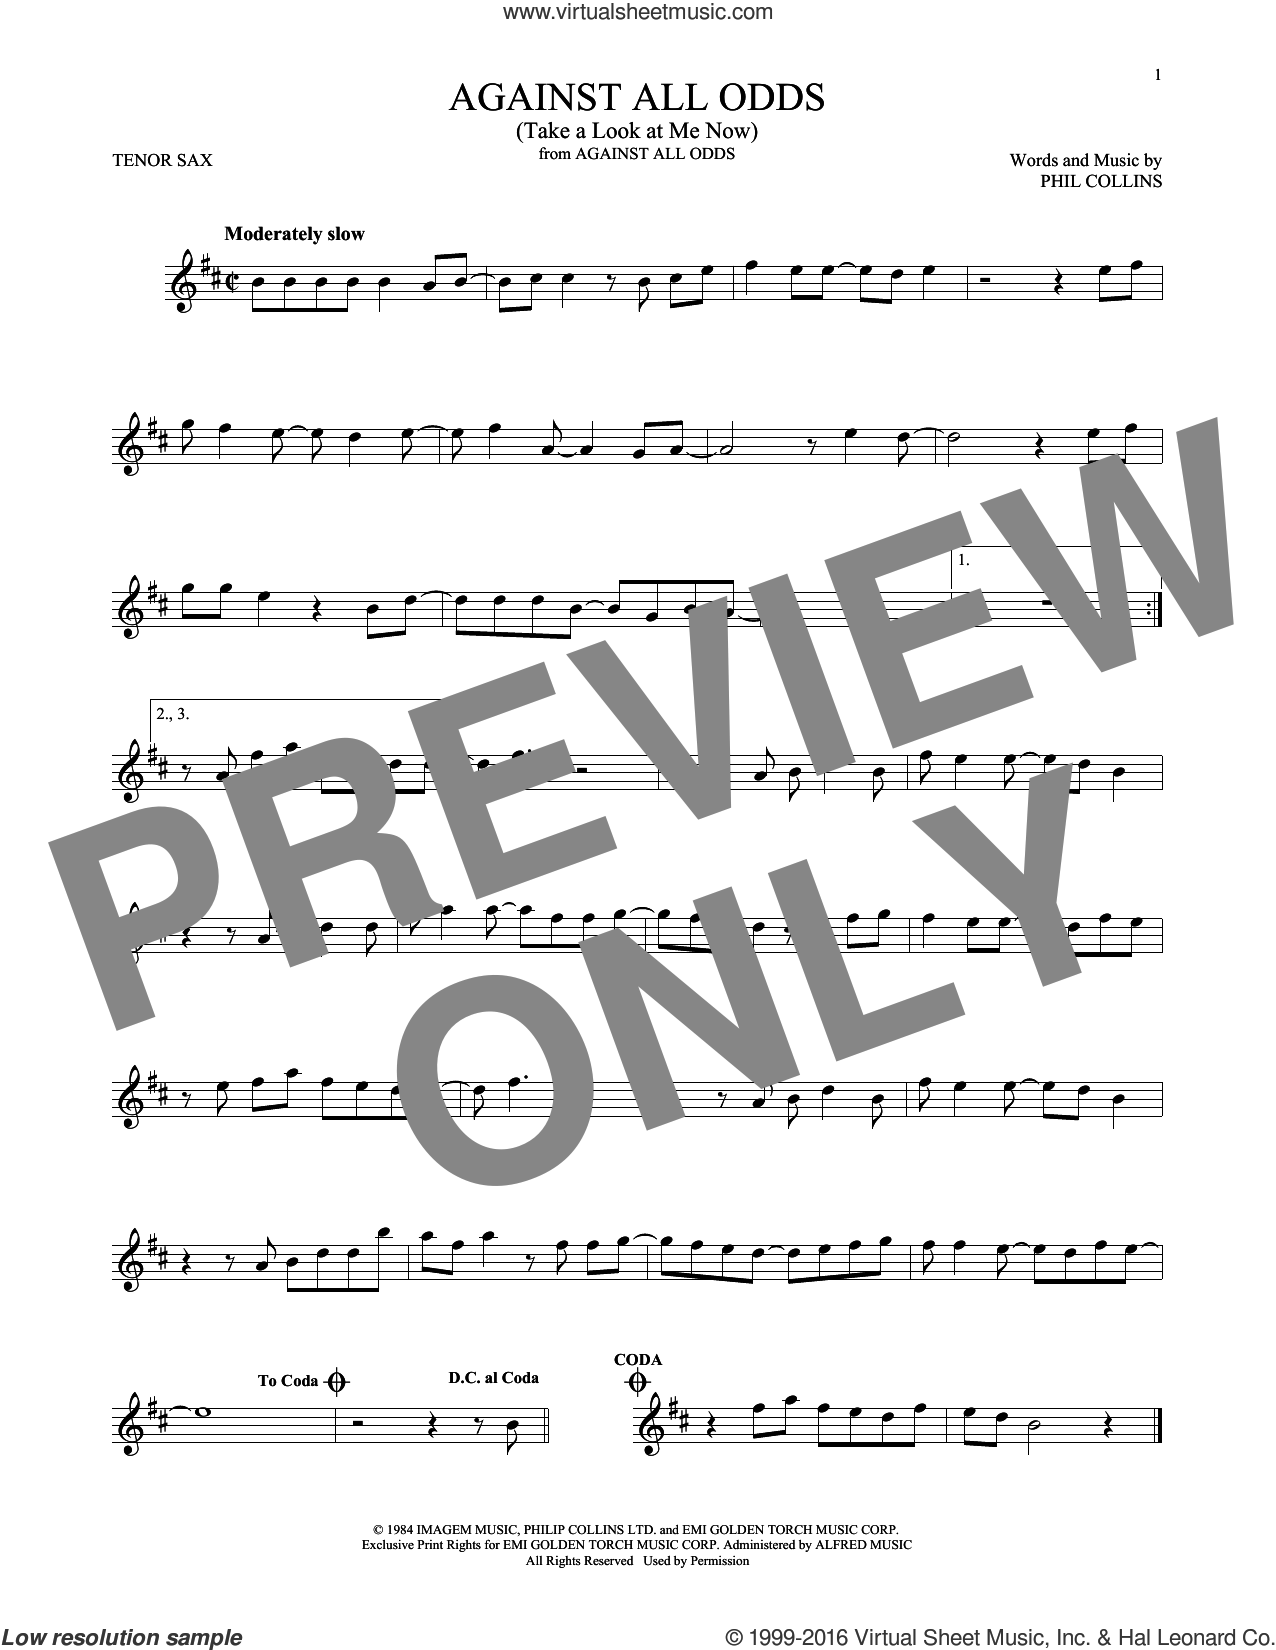 Against All Odds (Take A Look At Me Now) sheet music for tenor saxophone solo by Phil Collins, intermediate skill level